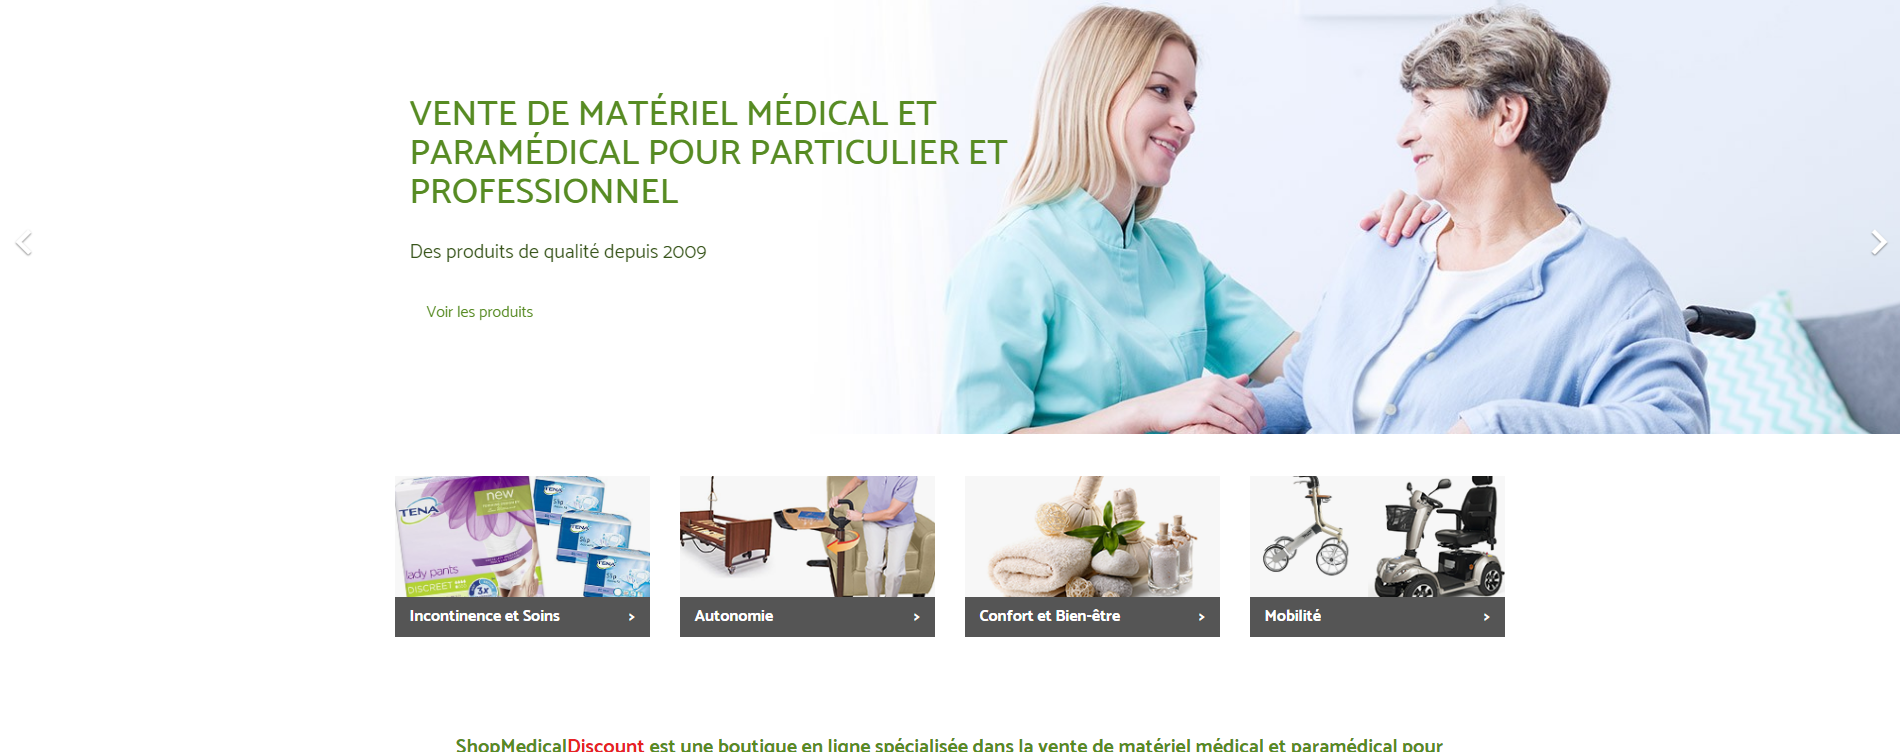 Vs Medical - Accueil